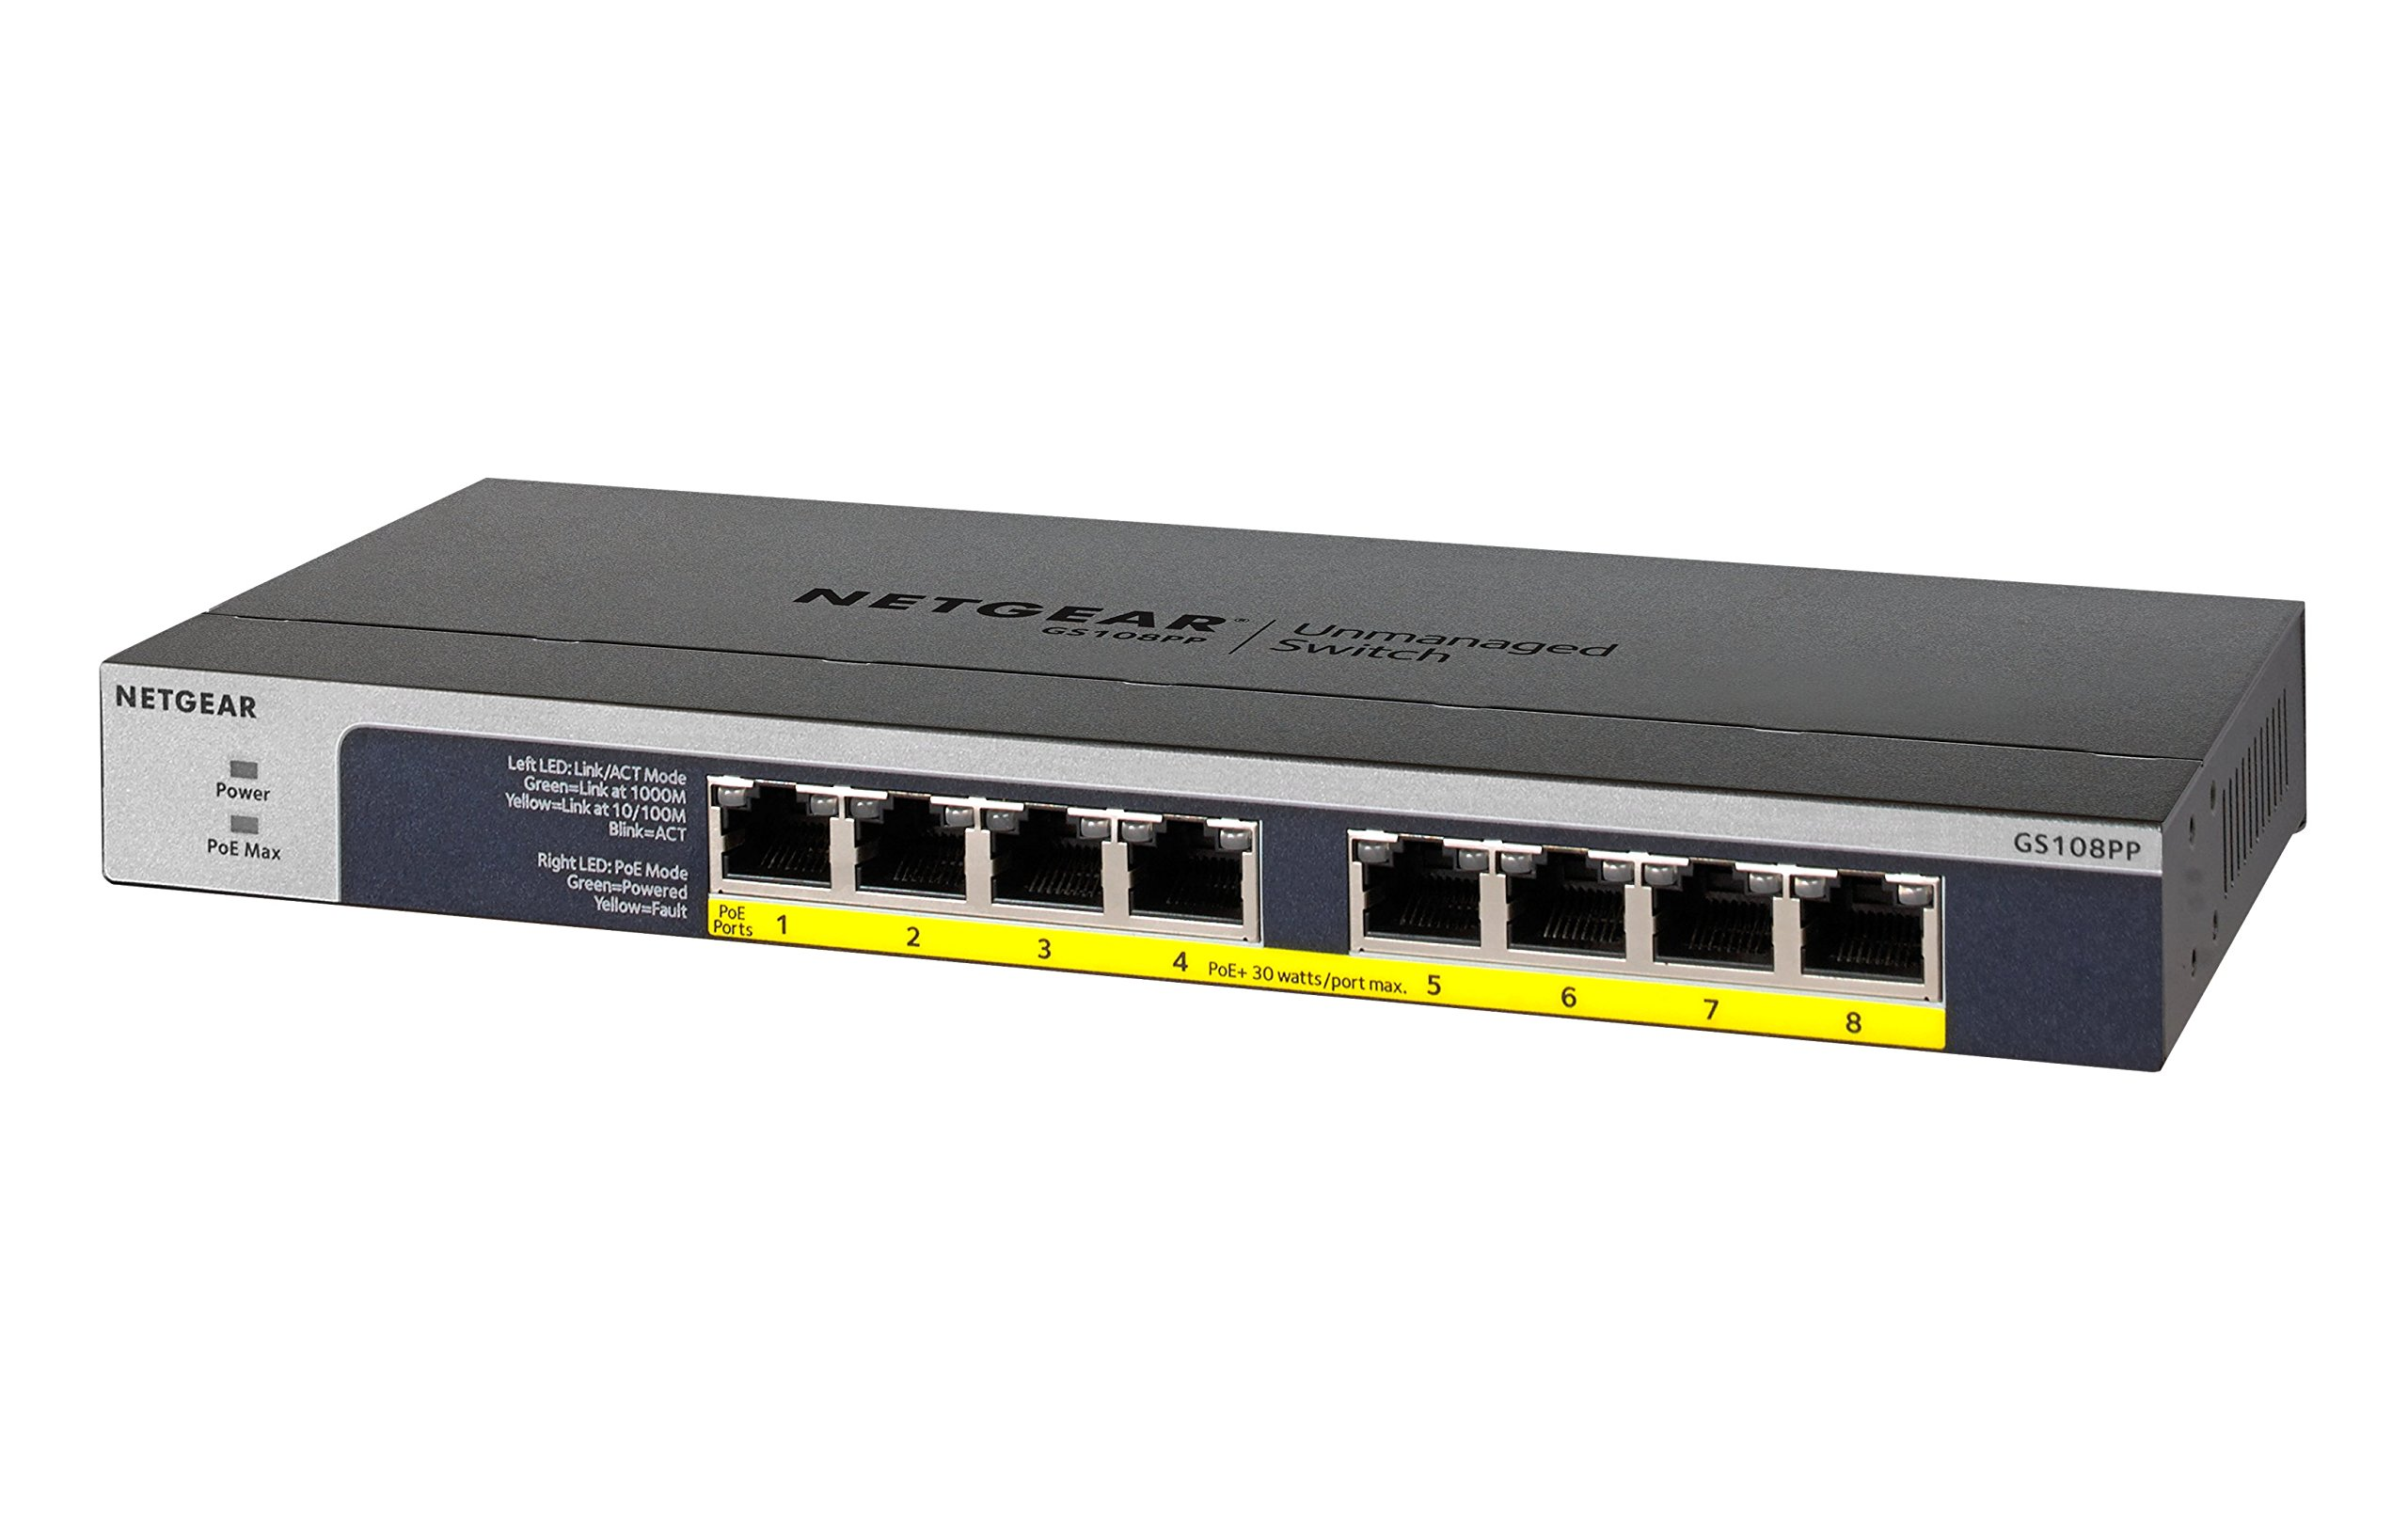 NETGEAR 8-Port Gigabit Unmanaged Switch, PoE/PoE+ 120W, Fanless, Rackmount, Plug-and-Play, ProSAFE Lifetime Protection (GS108PP) by NETGEAR (Image #2)